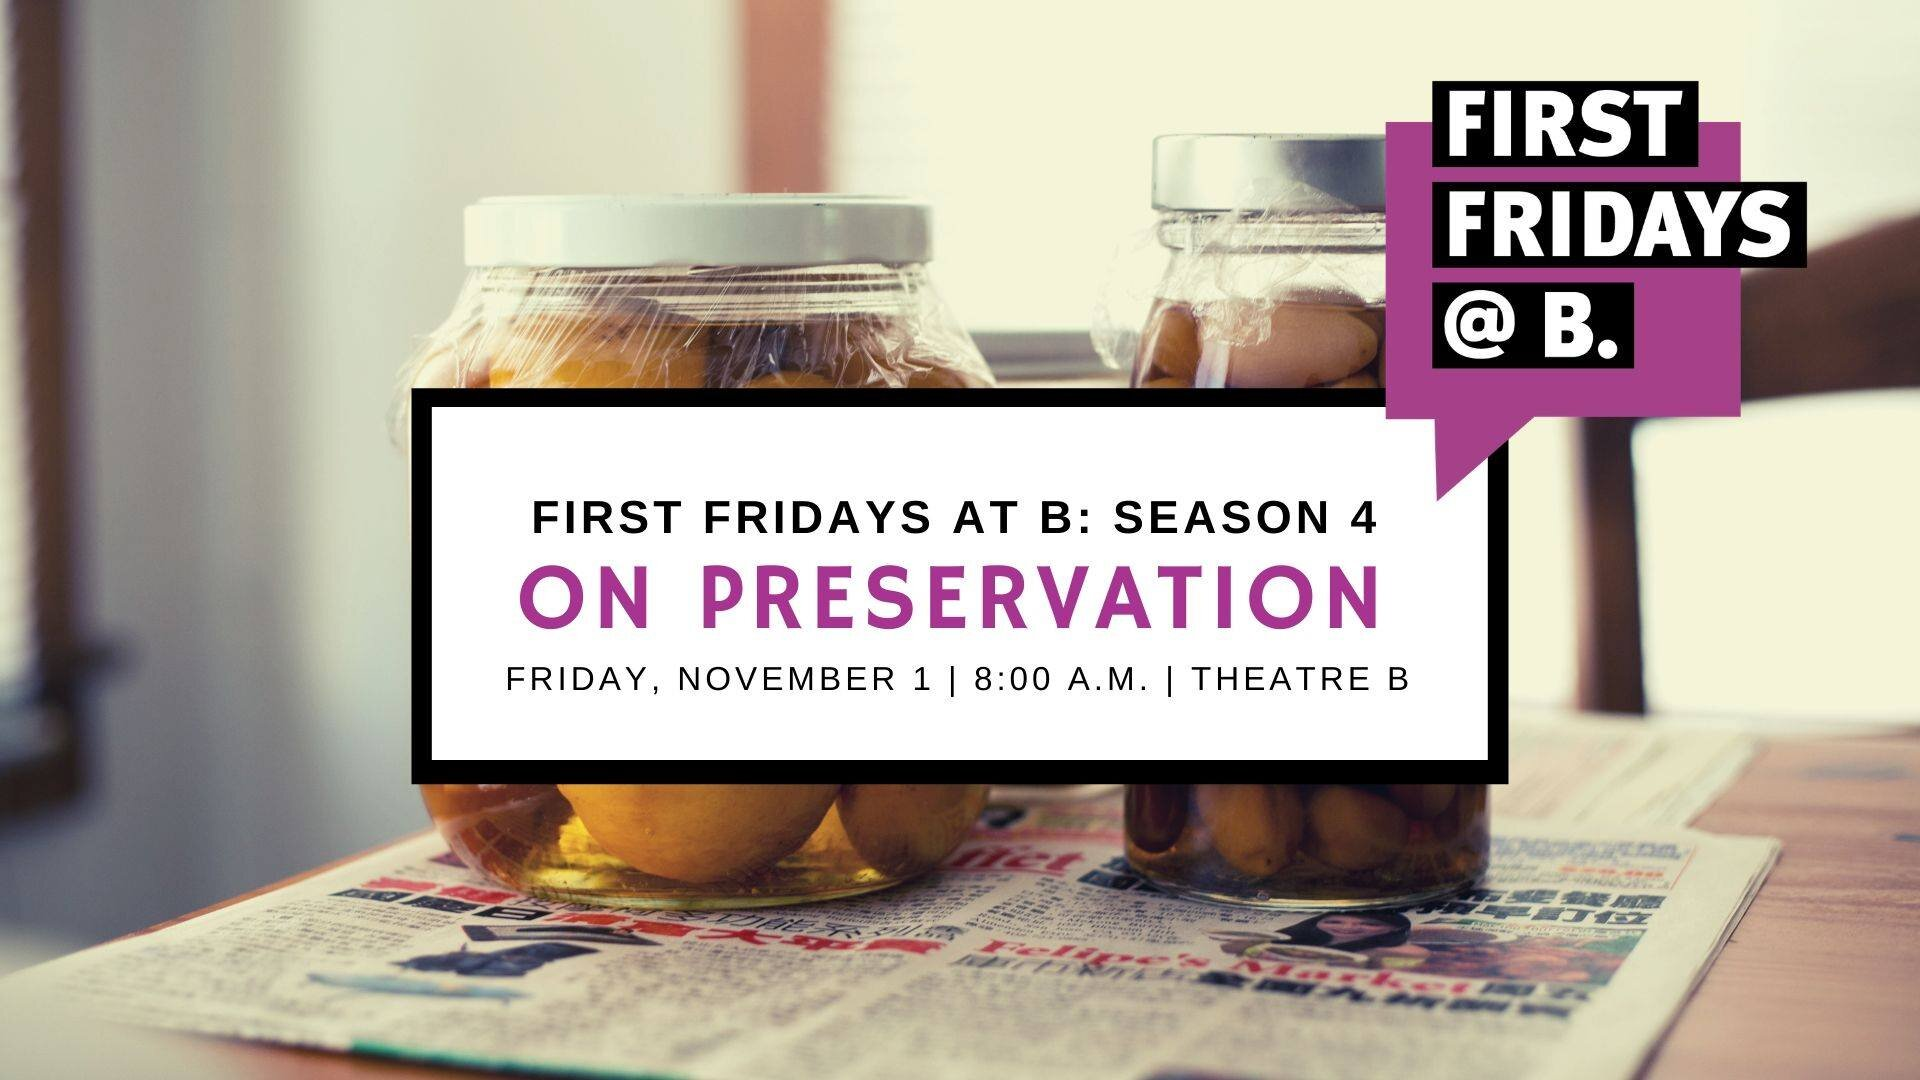 November 2019  -   The November edition of First Fridays focused on food preservation and featured area experts Markus Krueger (Historical and Cultural Society of Clay County), Rita Ussatis (NDSU Extension - Cass County), and Kevin Struxness (Hairy Hippie Pickling Company).   [Watch video]